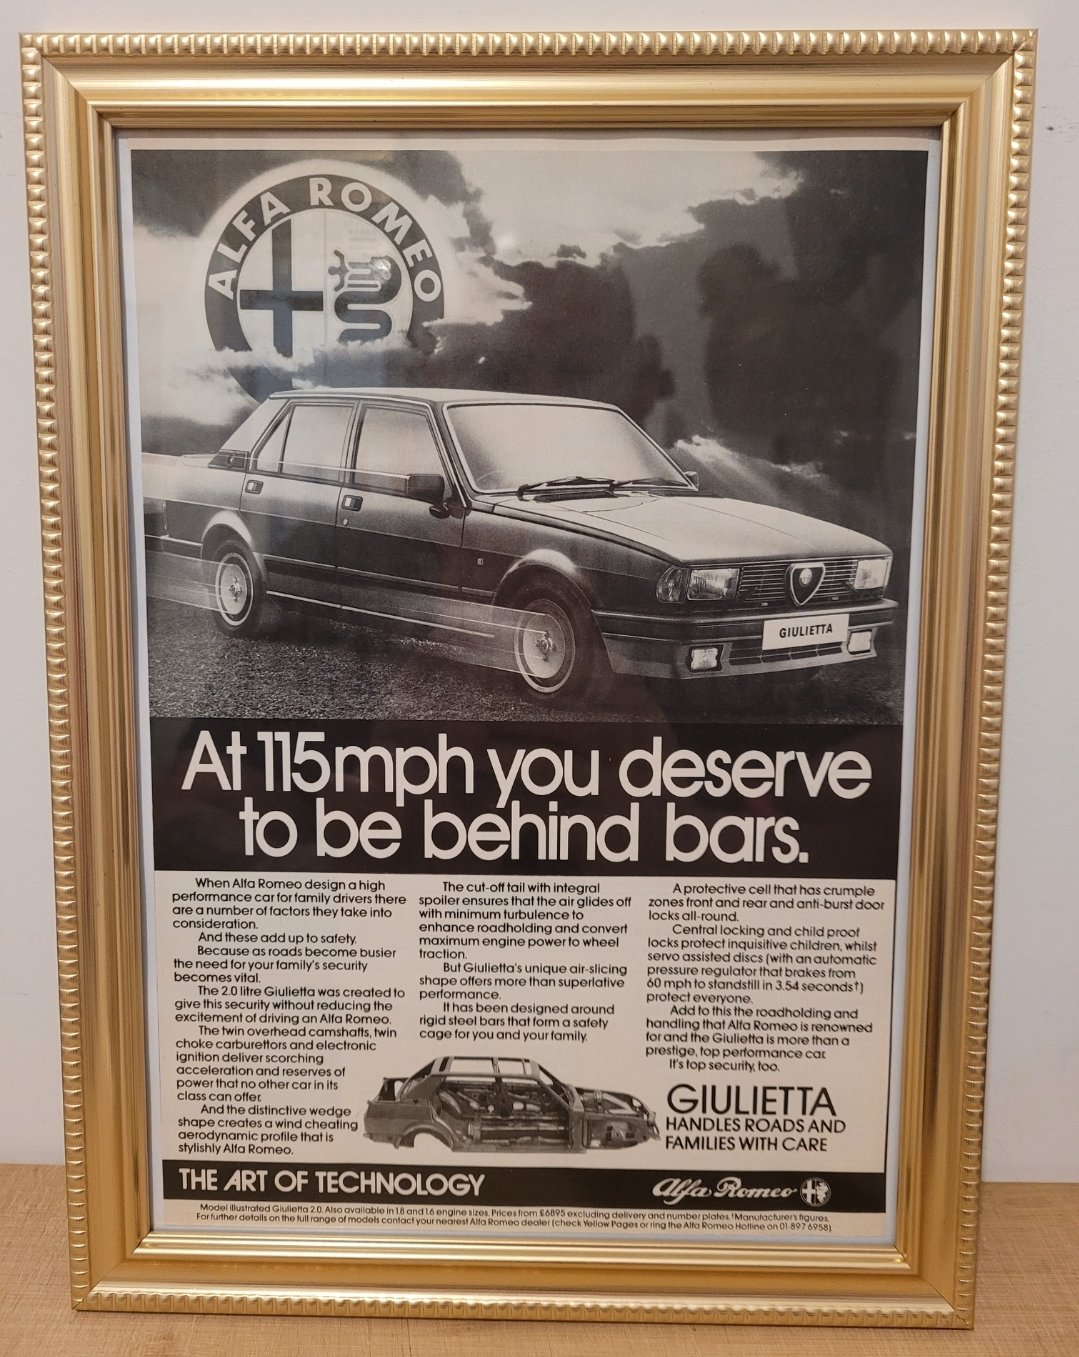 Picture of 1975 Original 1984 Alfa Romeo Giulietta Framed Advert For Sale